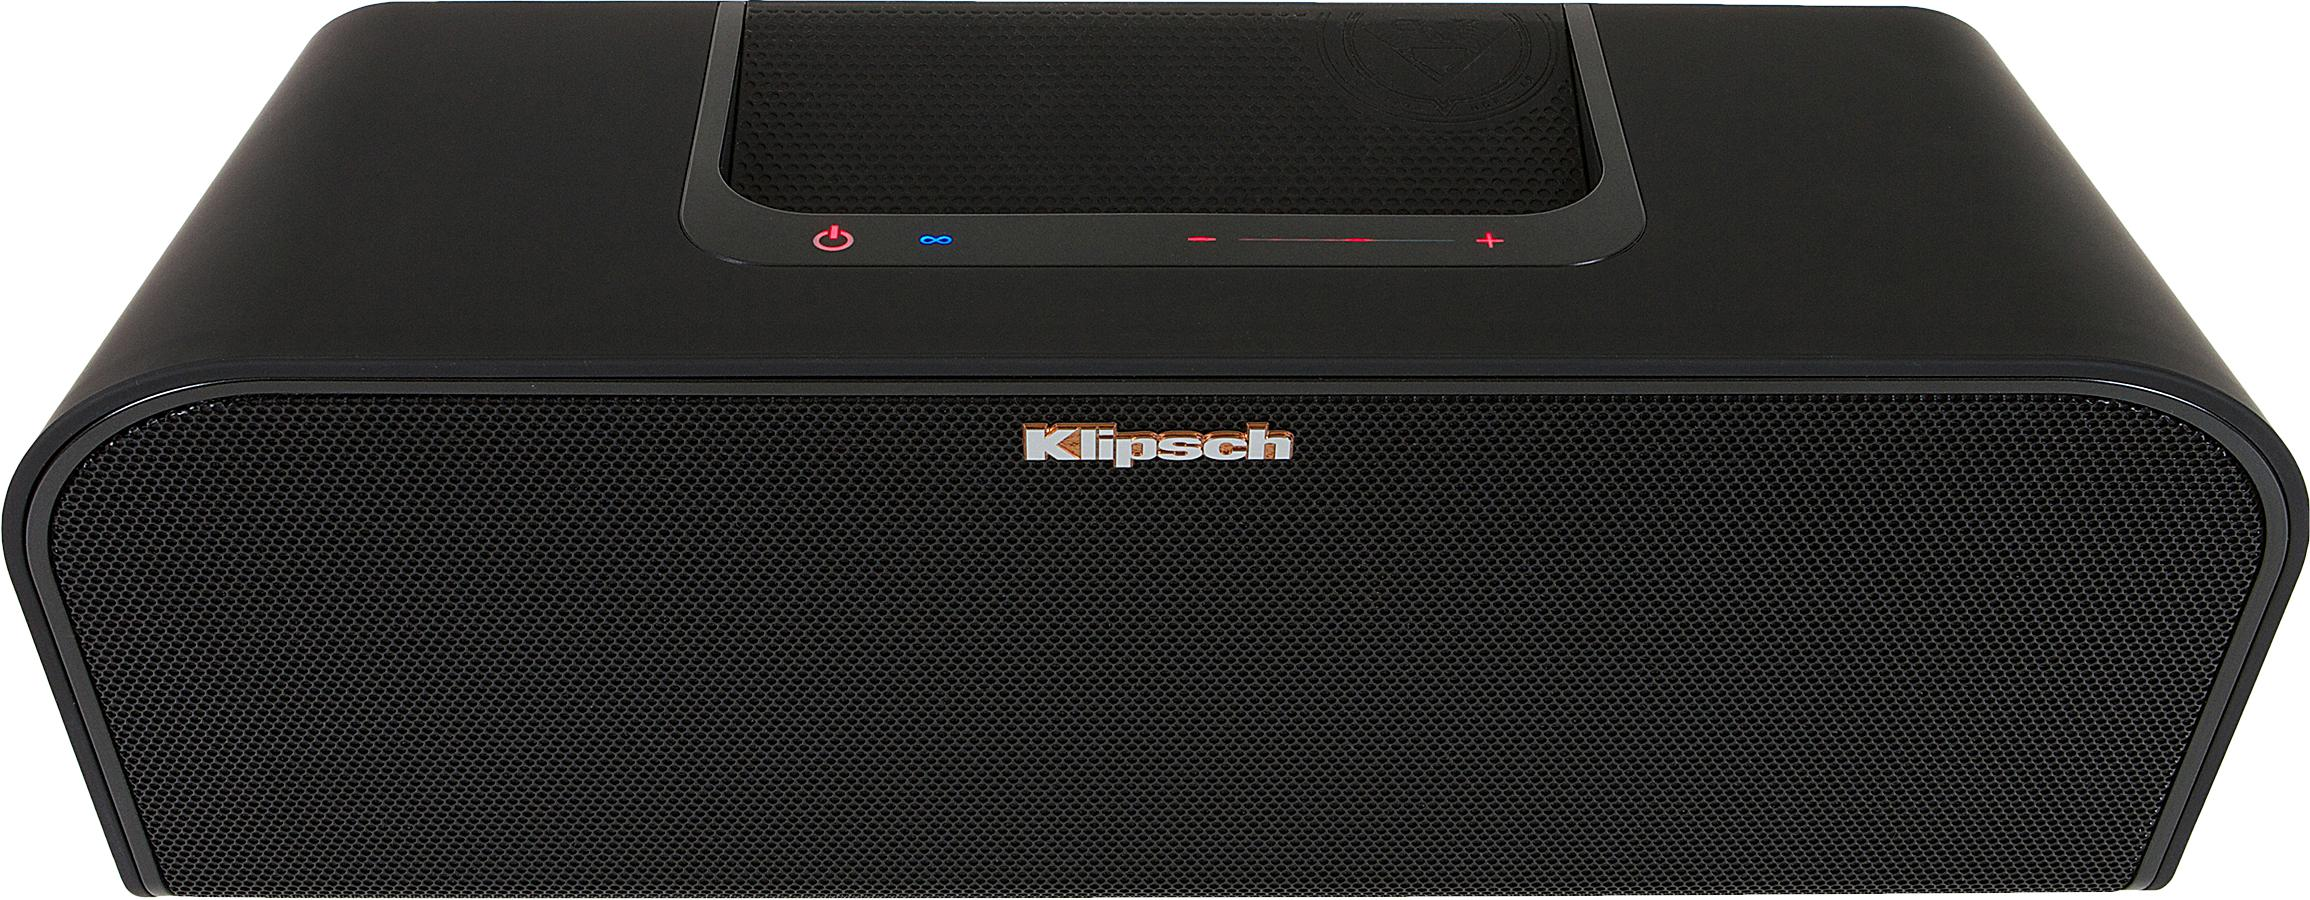 Klipsch Music Center KMC3